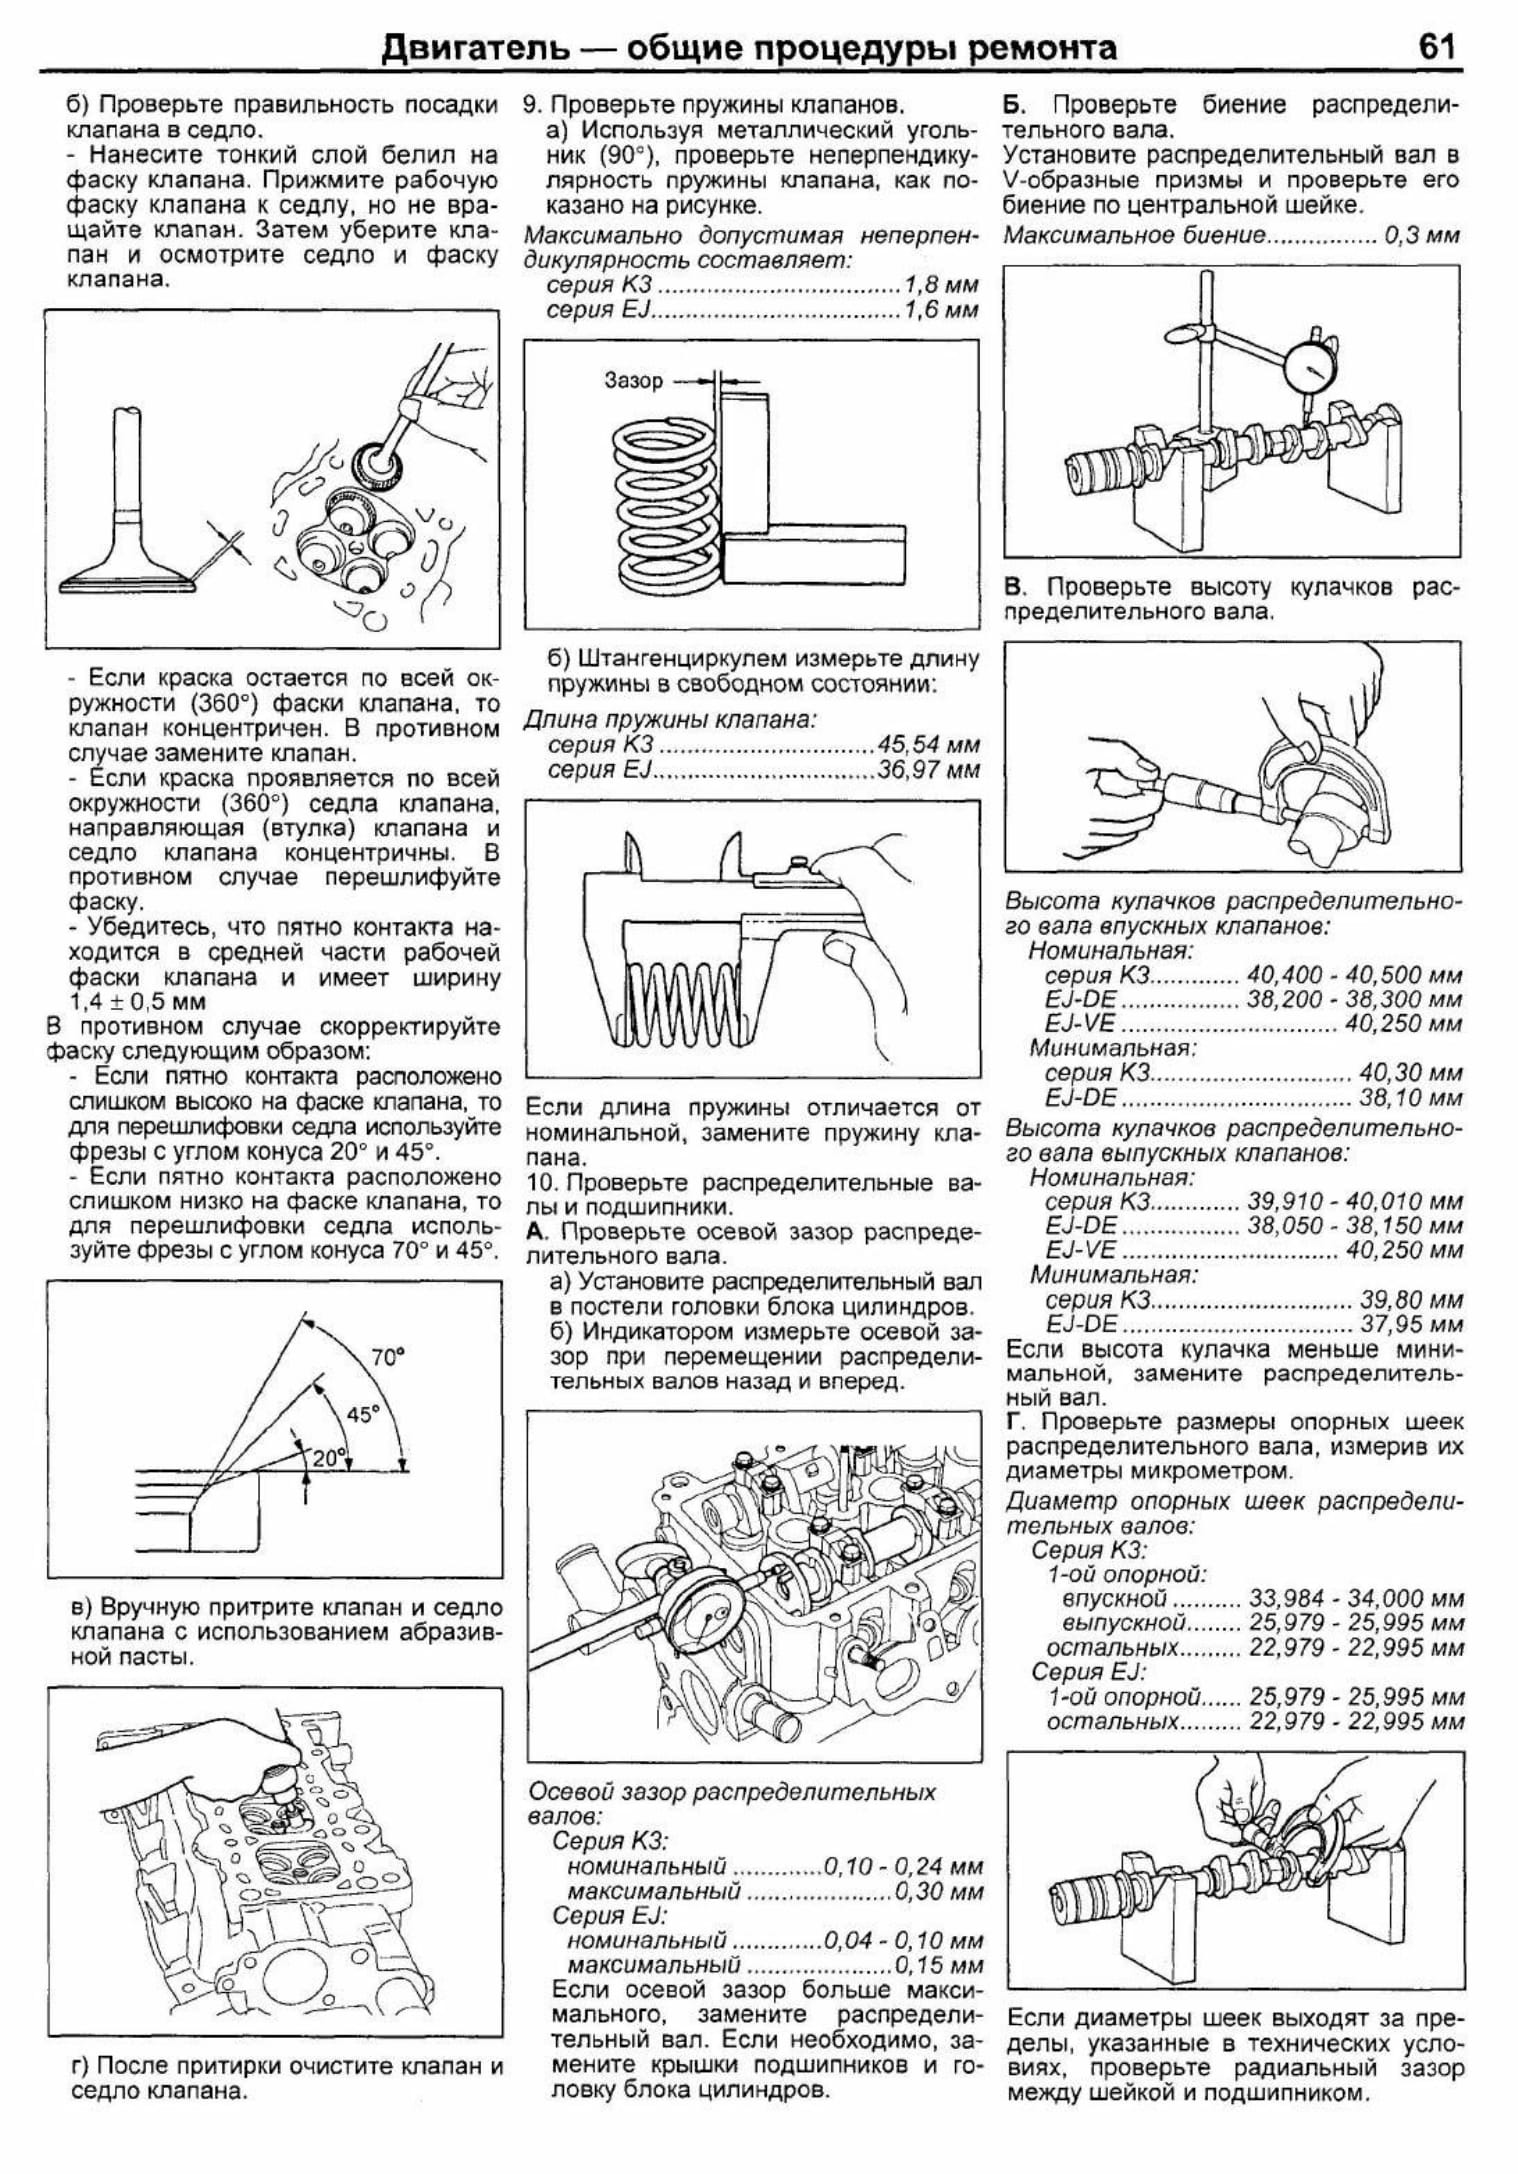 Is There Any Interest In A 1998 Sirion Workshop Manual